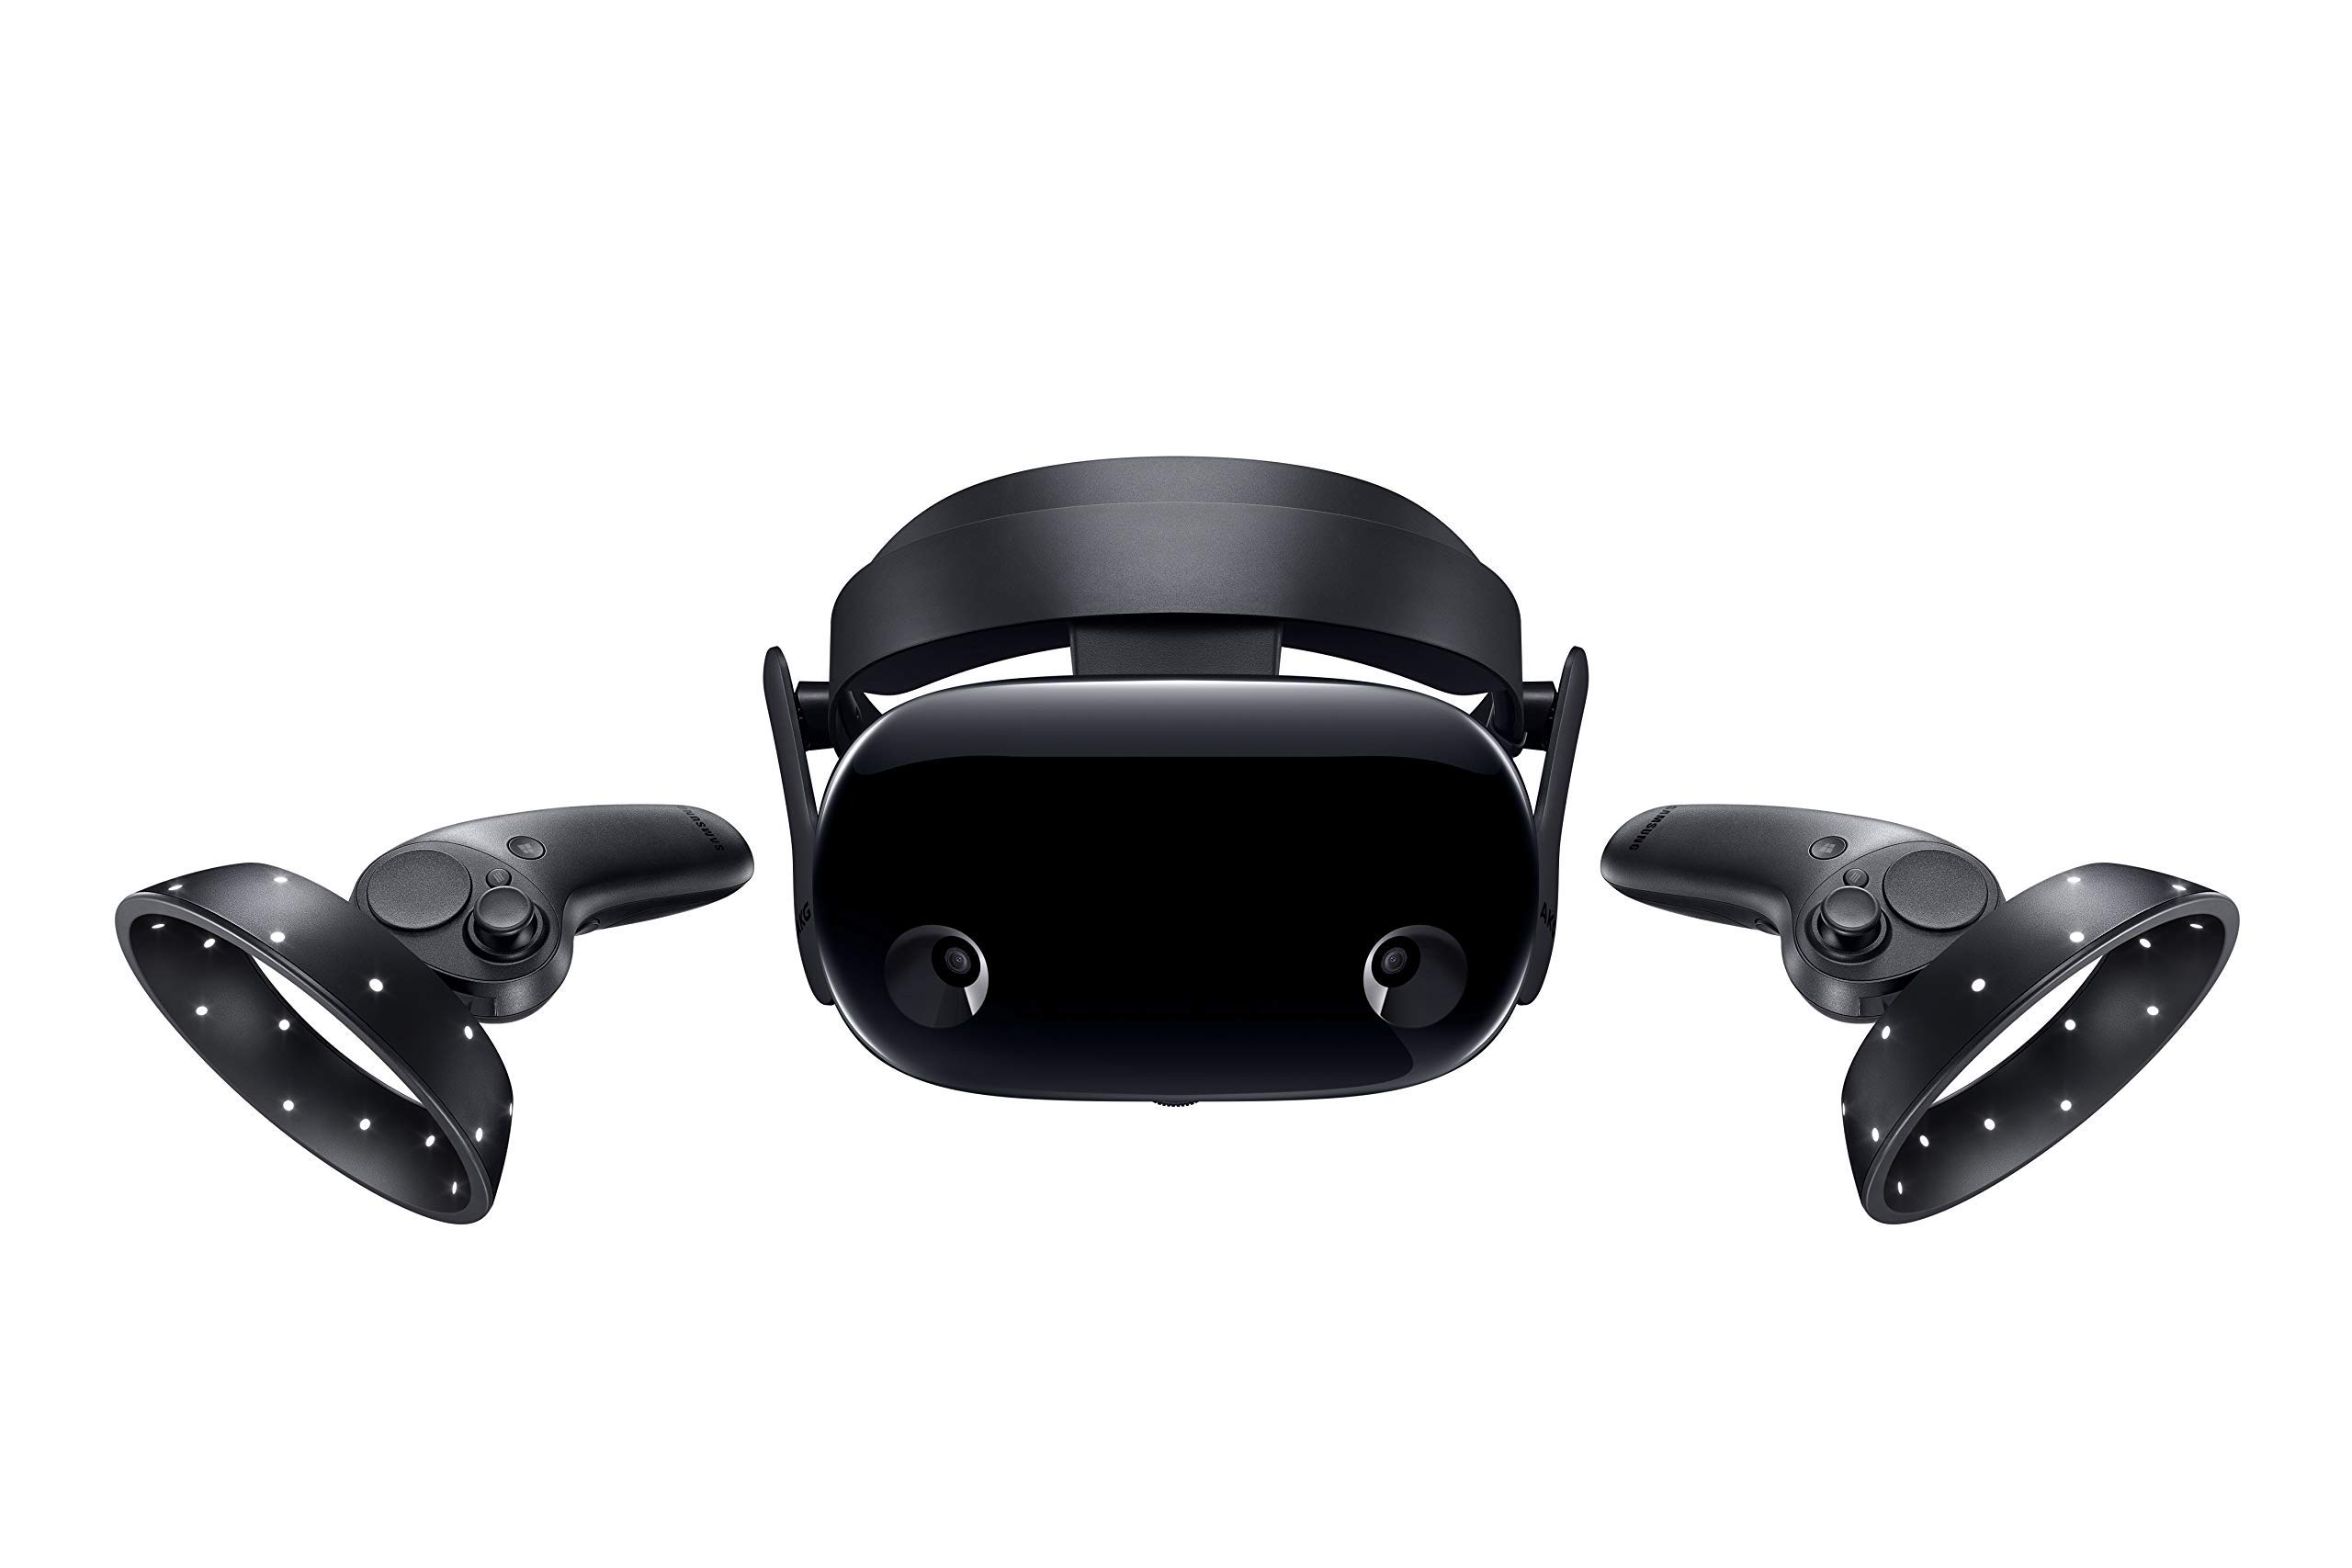 Samsung Electronics HMD Odyssey+ Windows Mixed Reality Headset with 2 Wireless Controllers 3.5in Black (XE800ZBA-HC1US) (Renewed)